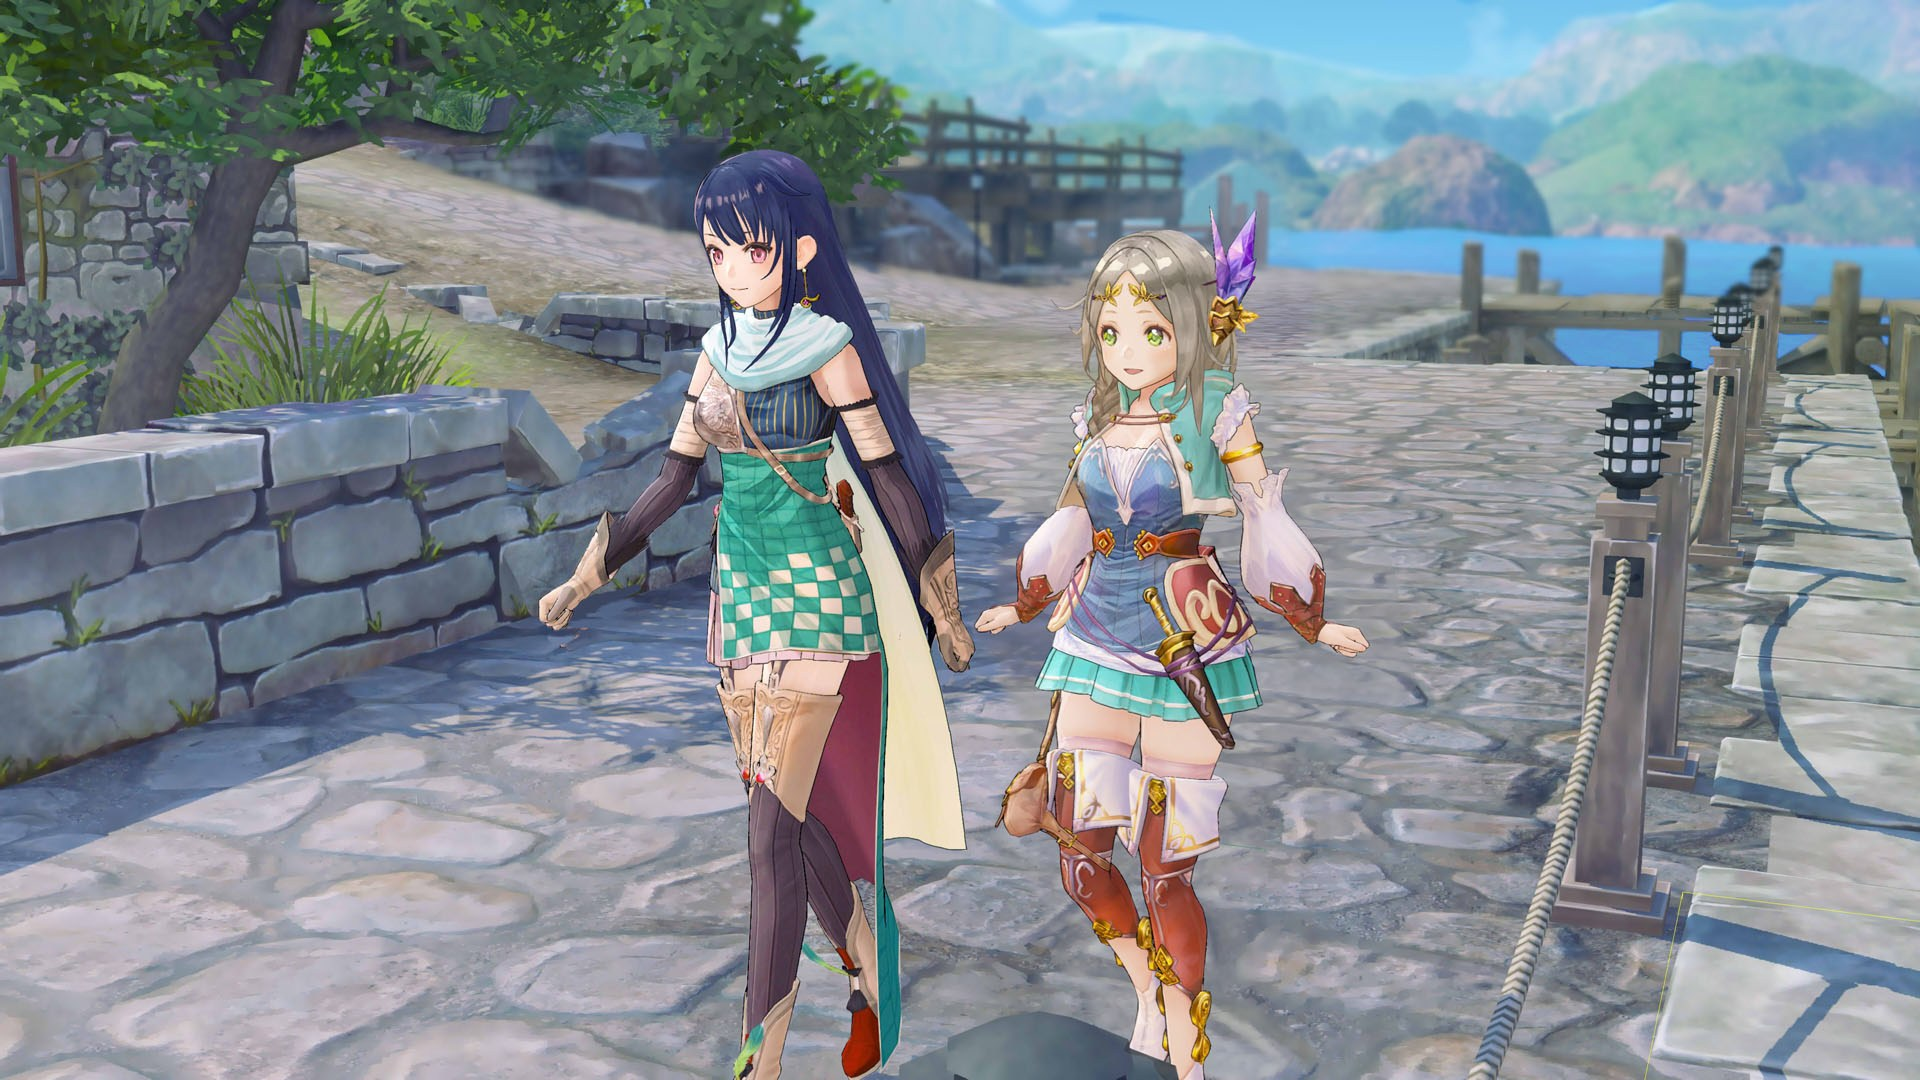 atelier firis the alchemist and the mysterious journey review ps series has received several games they all stand out on their own so that there is no need to play them in release order the only time the story